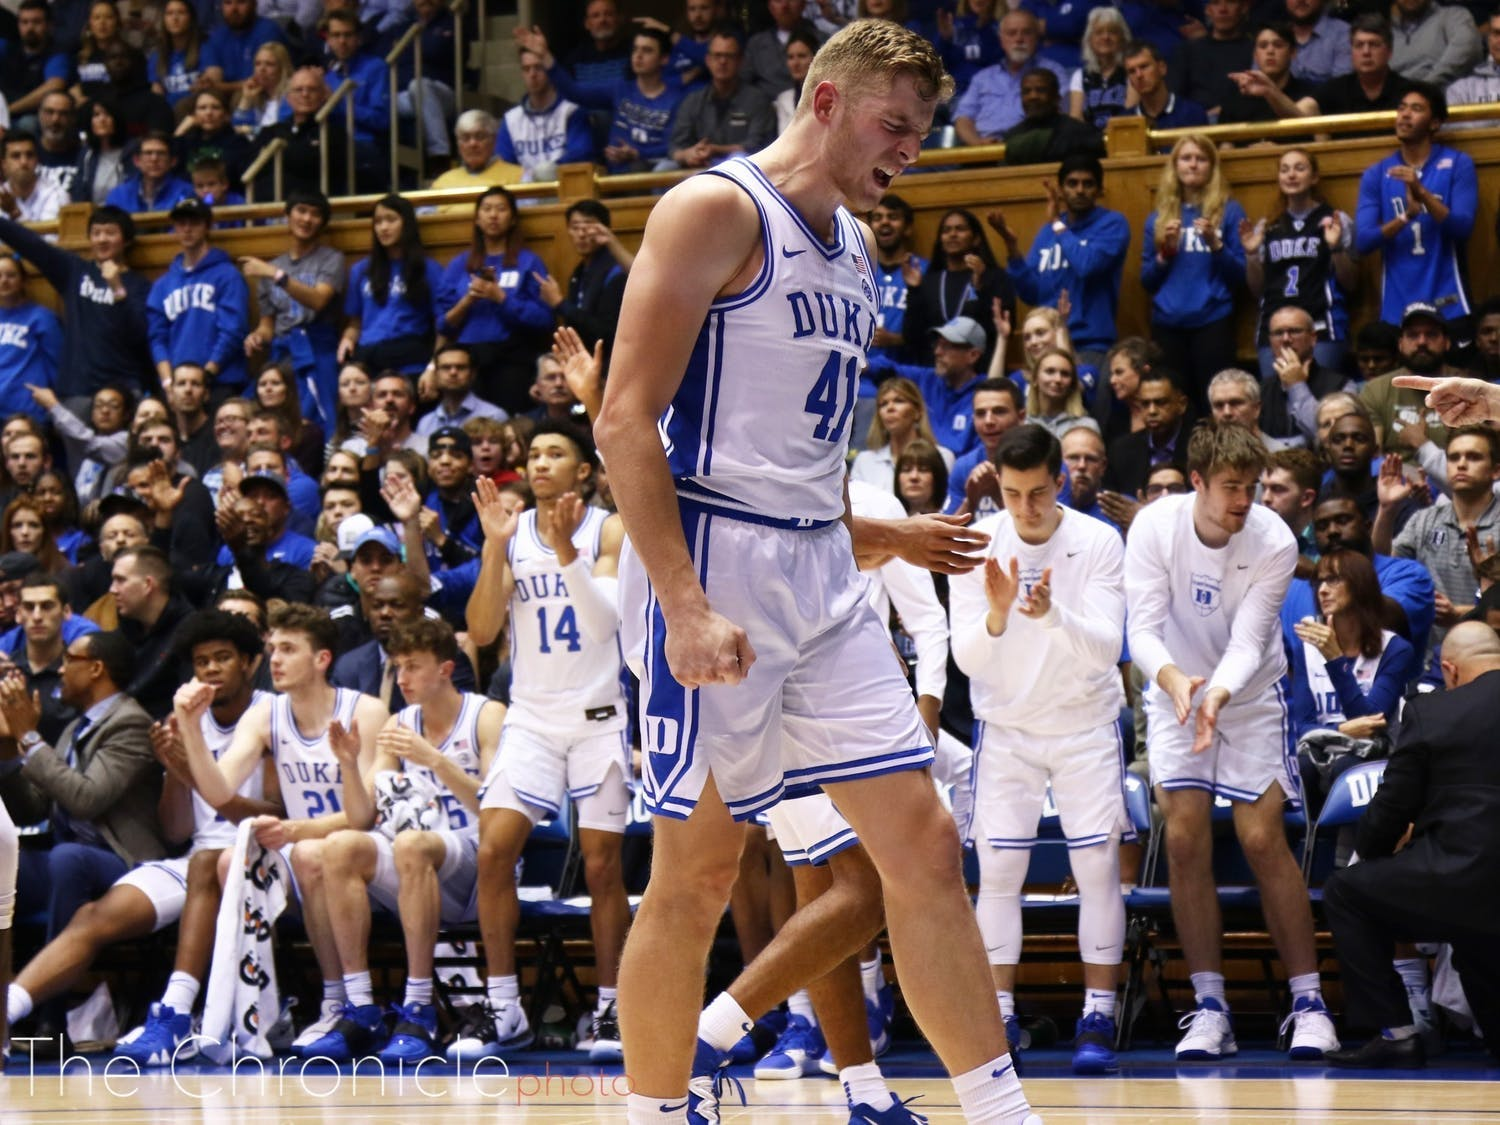 White served as a captain for Duke in both his junior and senior seasons.